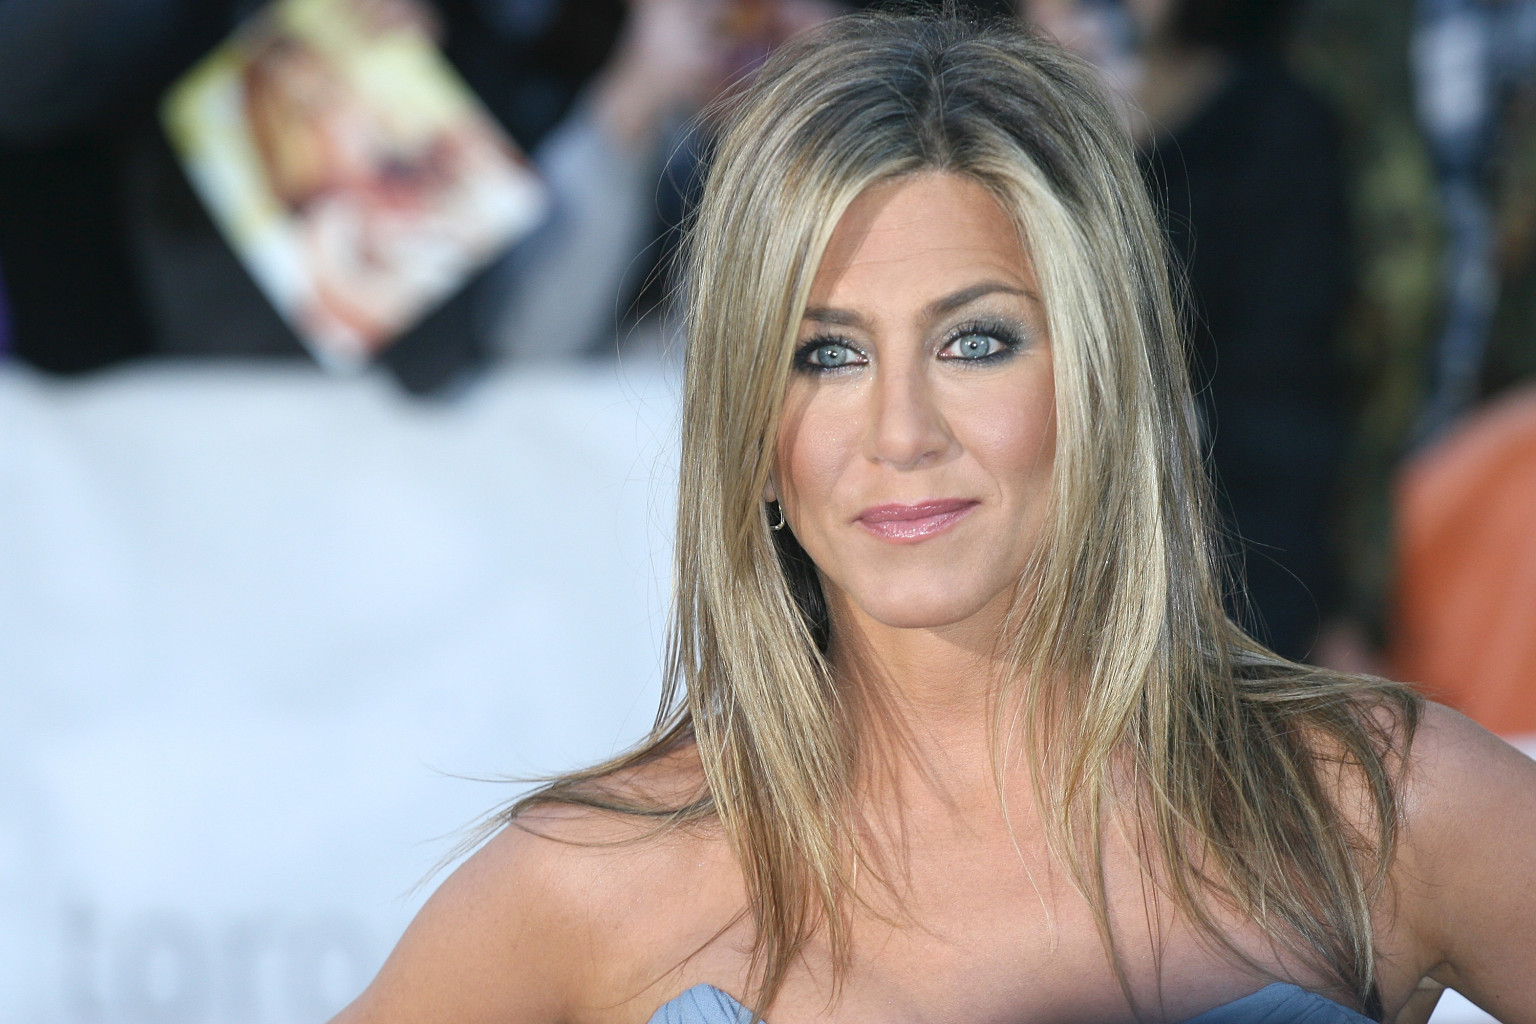 Jennifer Aniston: Jennifer Aniston's Strapless Dress Steals The Show At TIFF